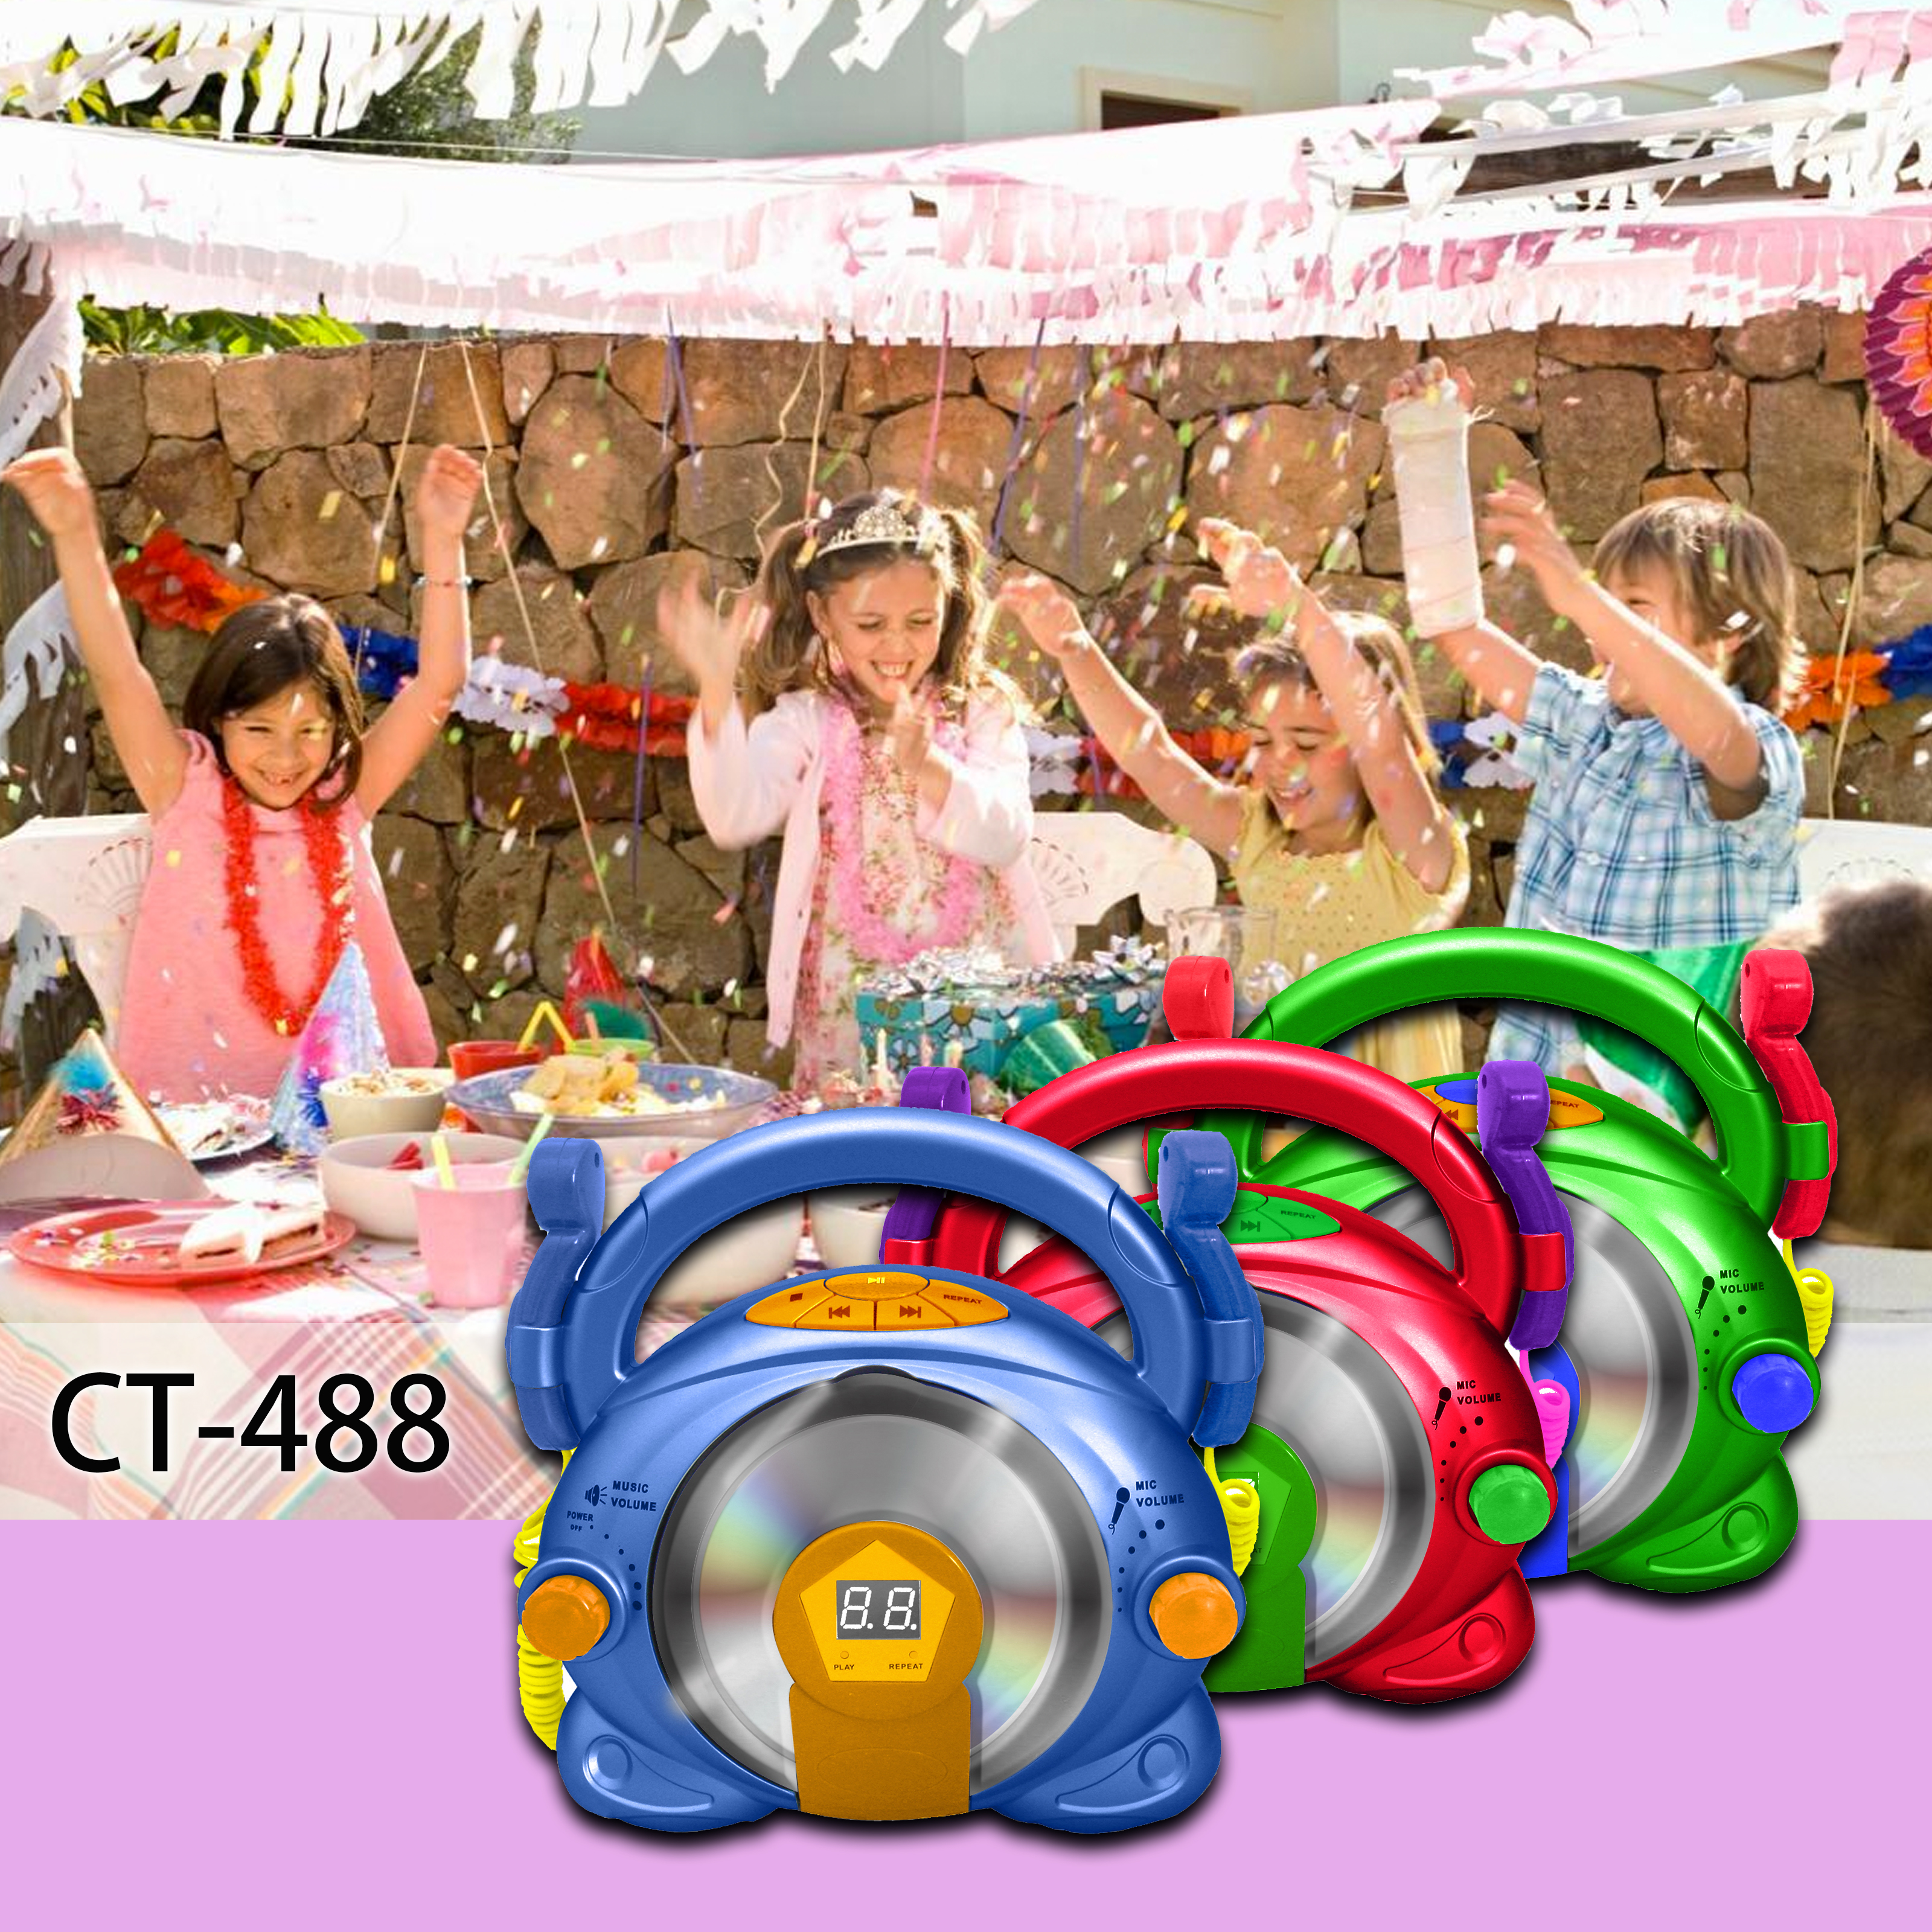 CT-488 party .jpg